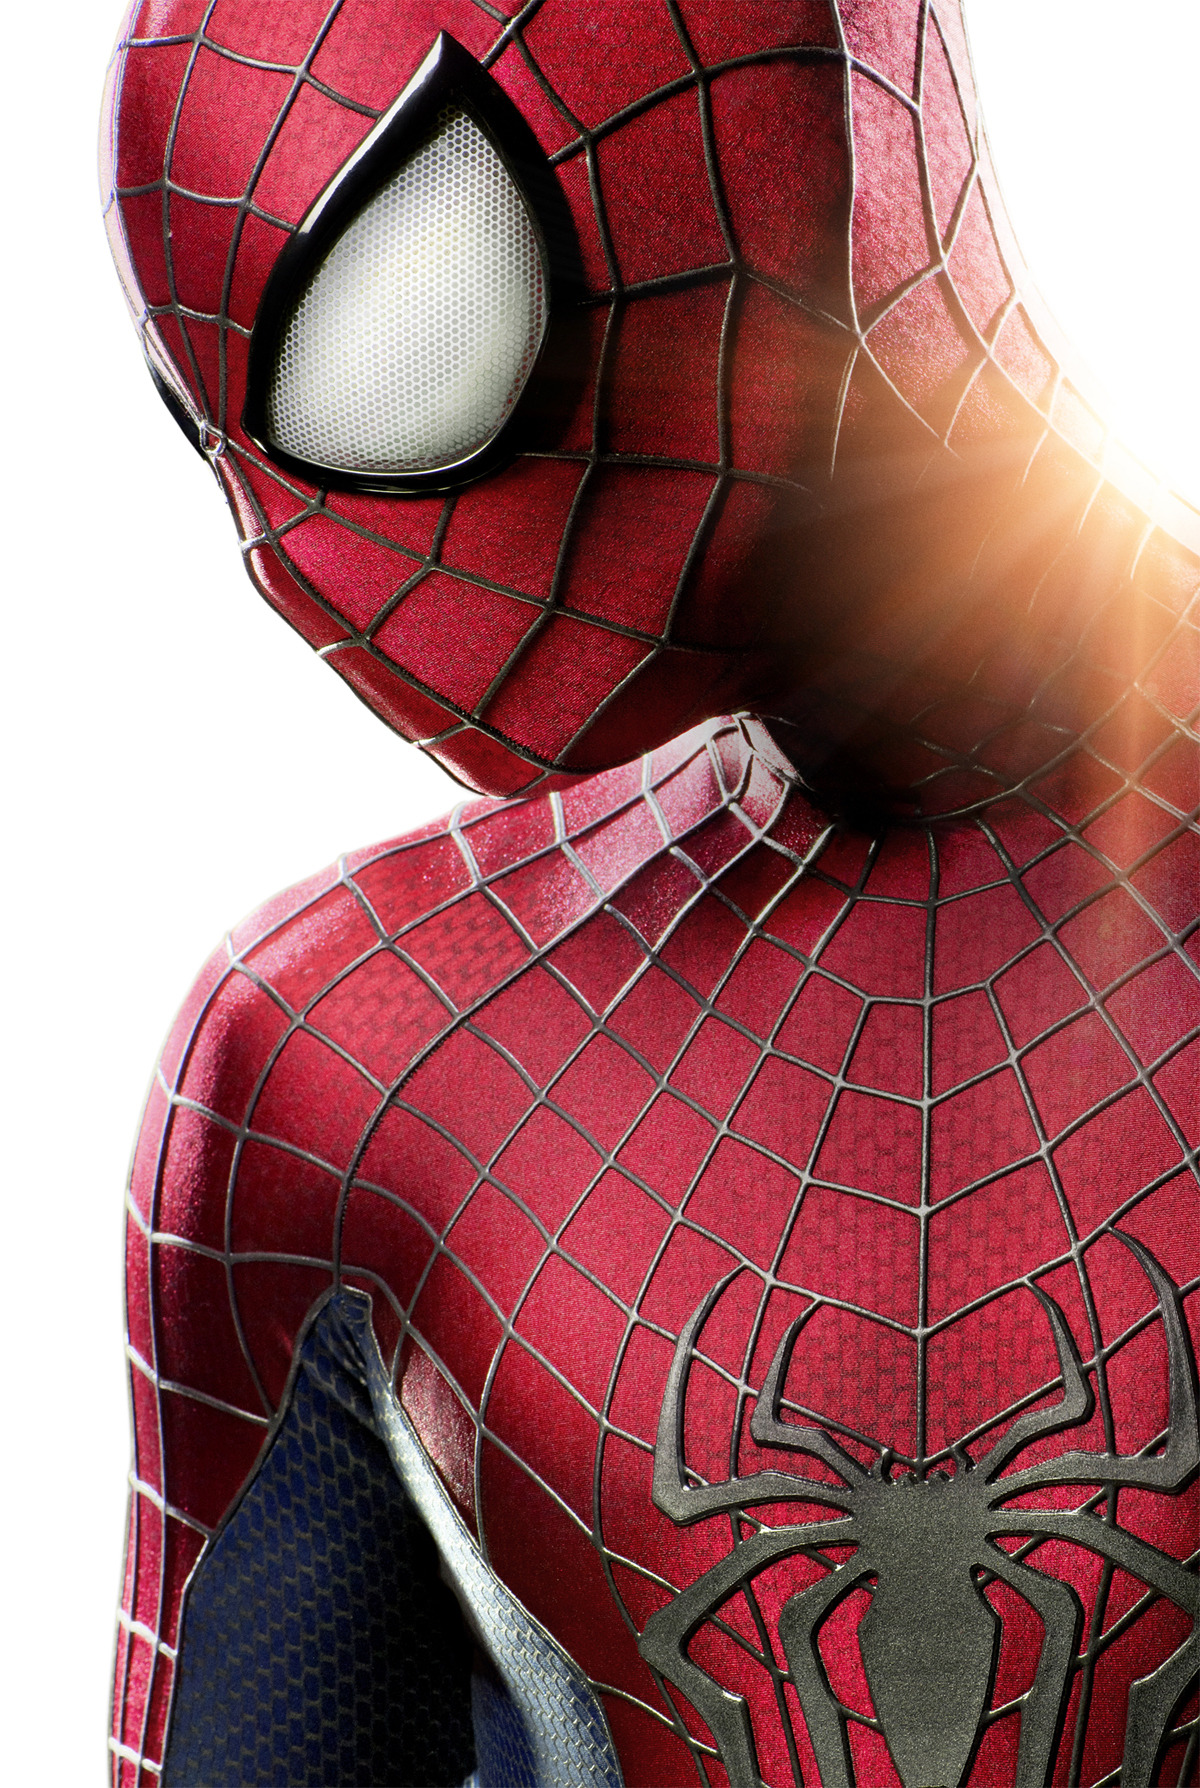 theamazingspidermanmovie:   The new Spidey suit for THE AMAZING SPIDER-MAN 2 is here! May 2, 2014 is closer than you think…